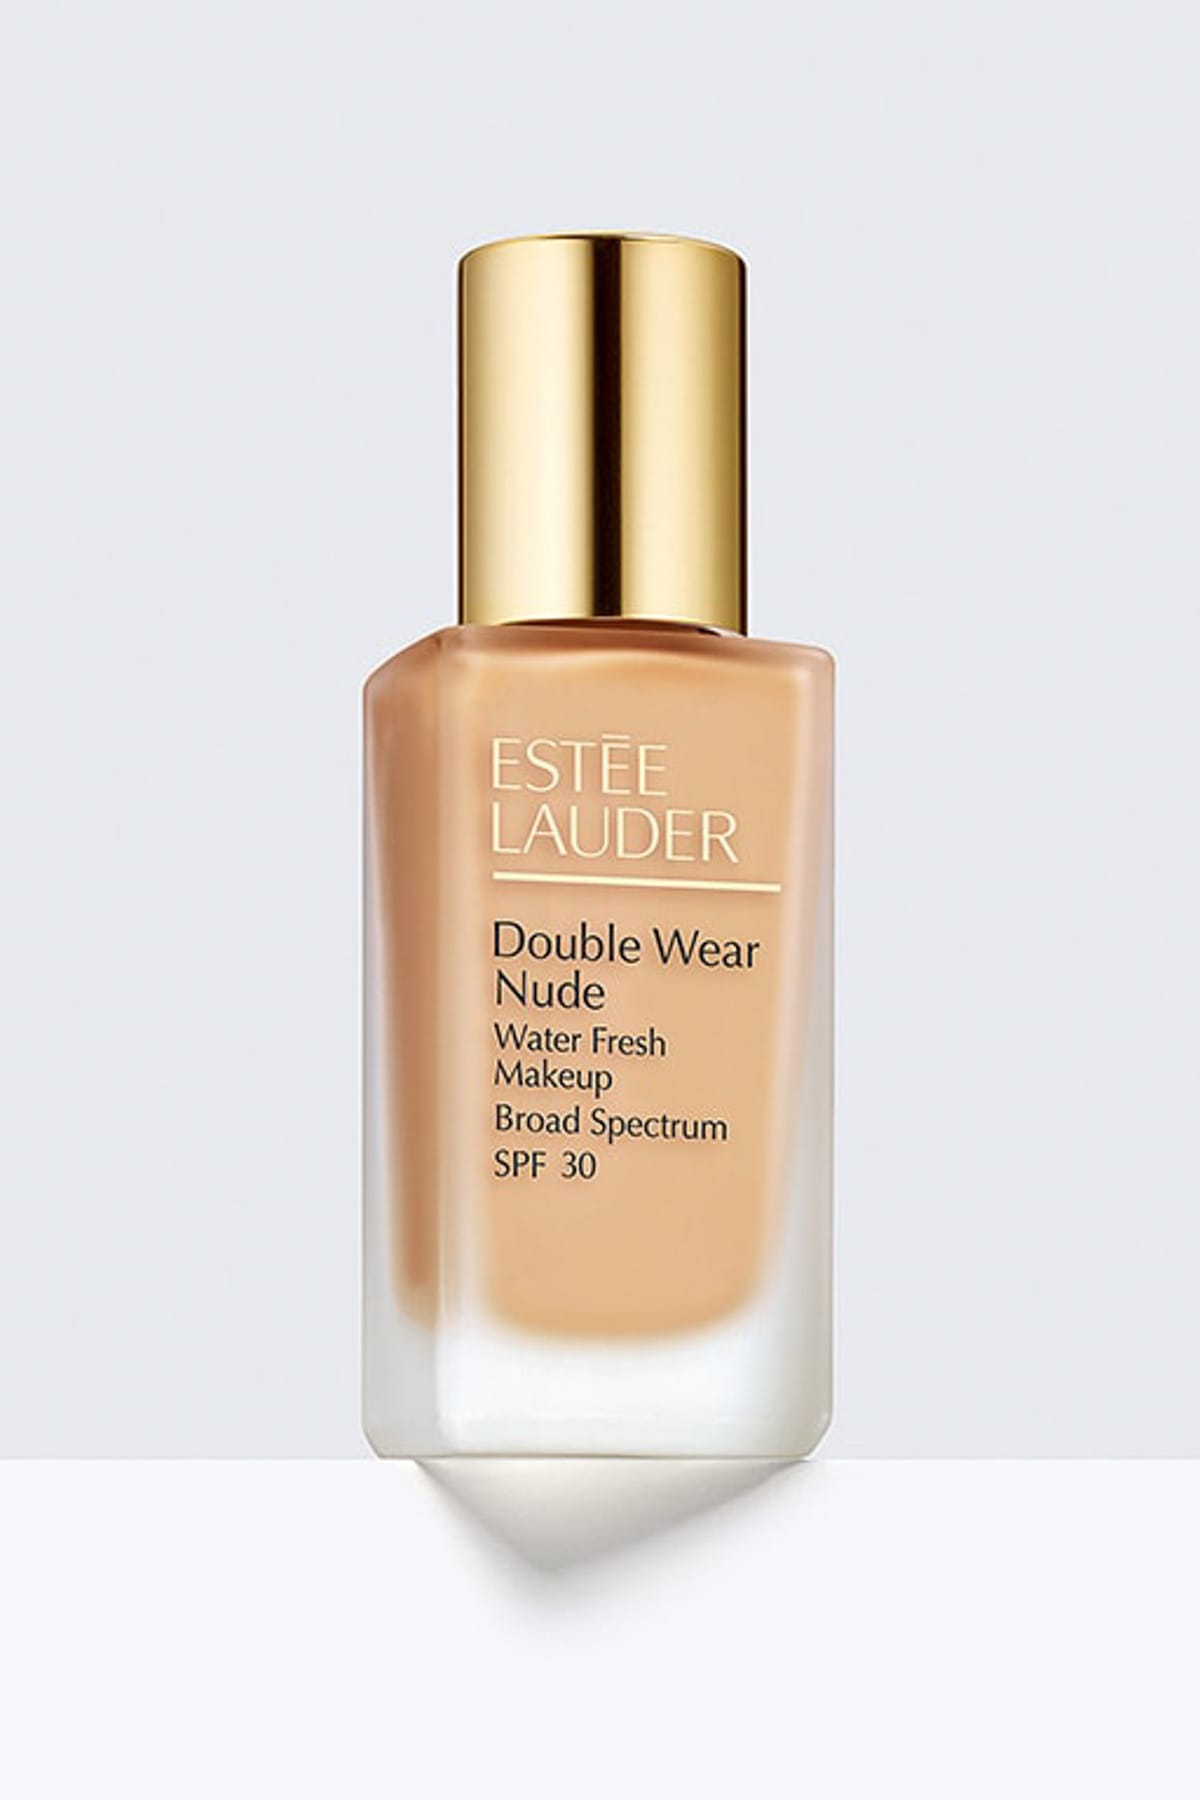 Estee Lauder Fondöten - Double Wear Nude Water Fresh Foundation Spf 30 2N1 Desert Beige 30 ml 887167332102 1